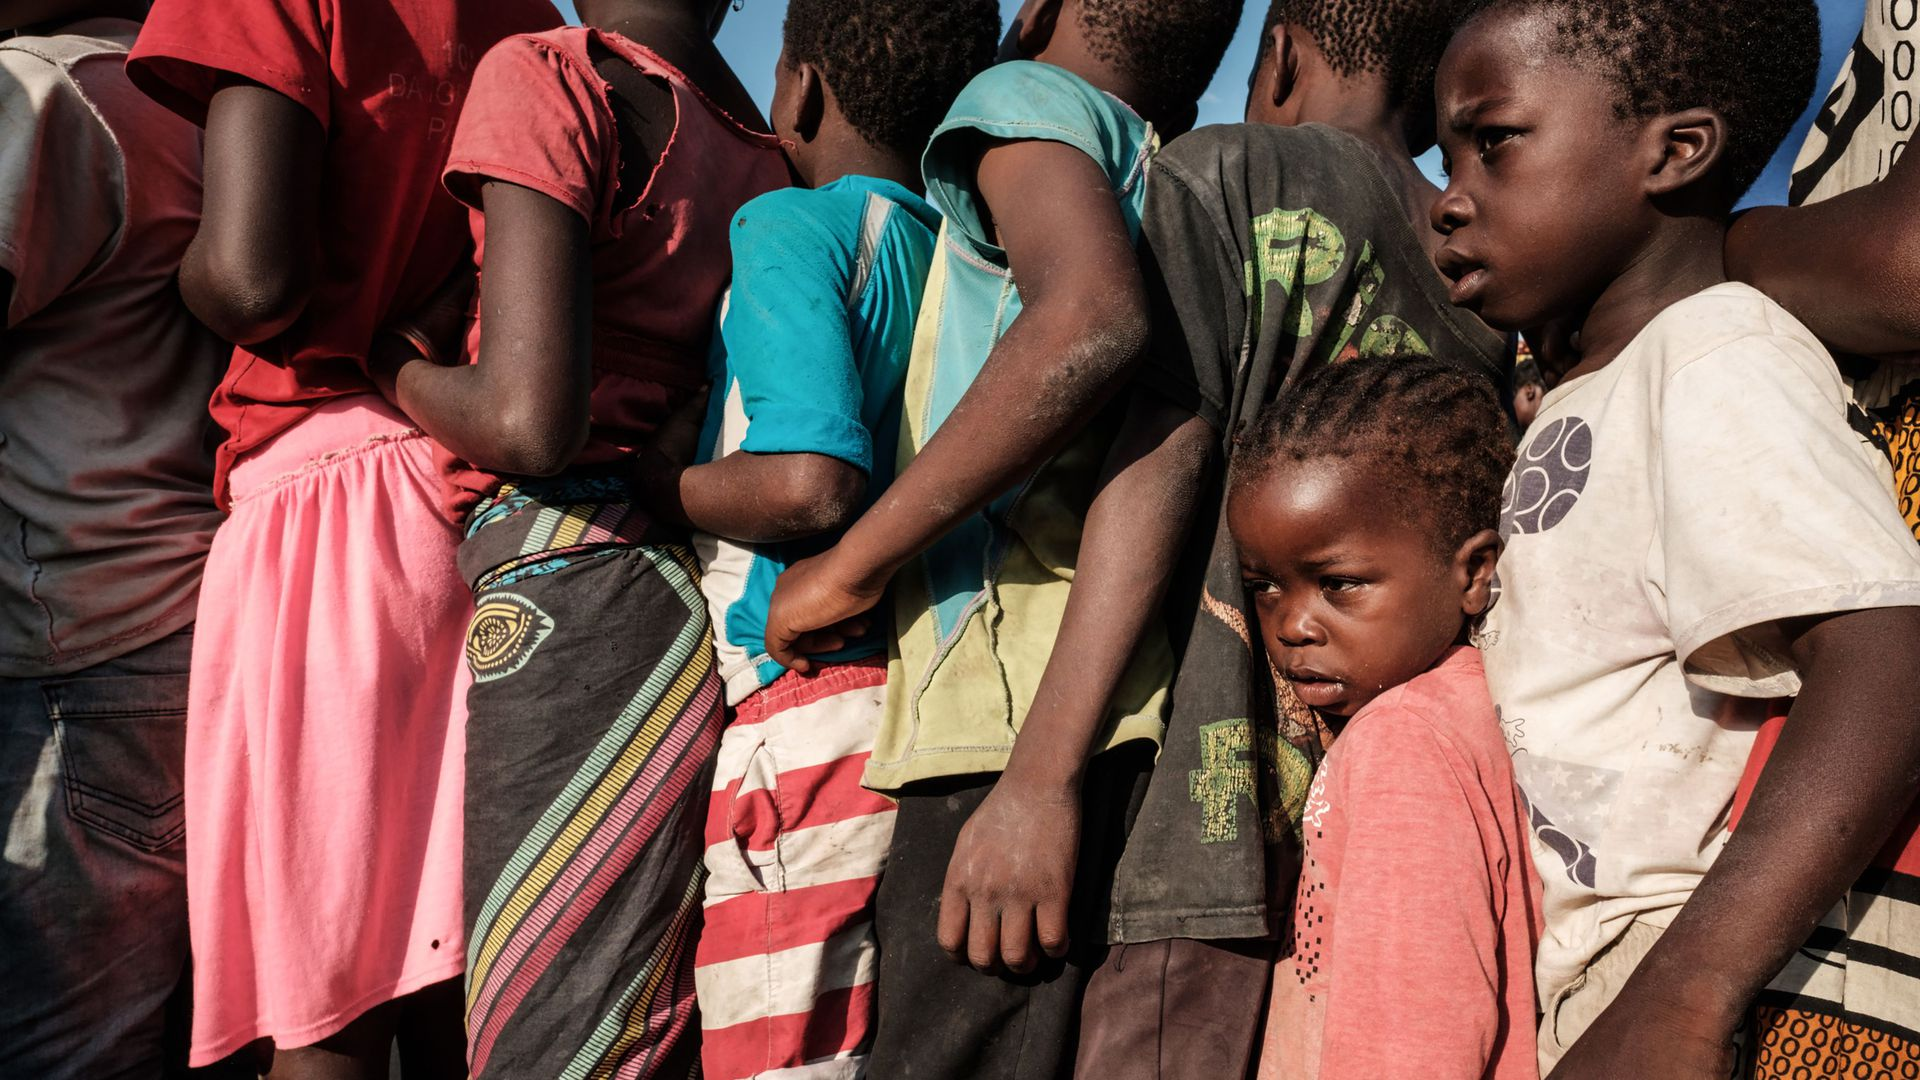 Children in Mozambique wait in line for food following Cyclone Idai